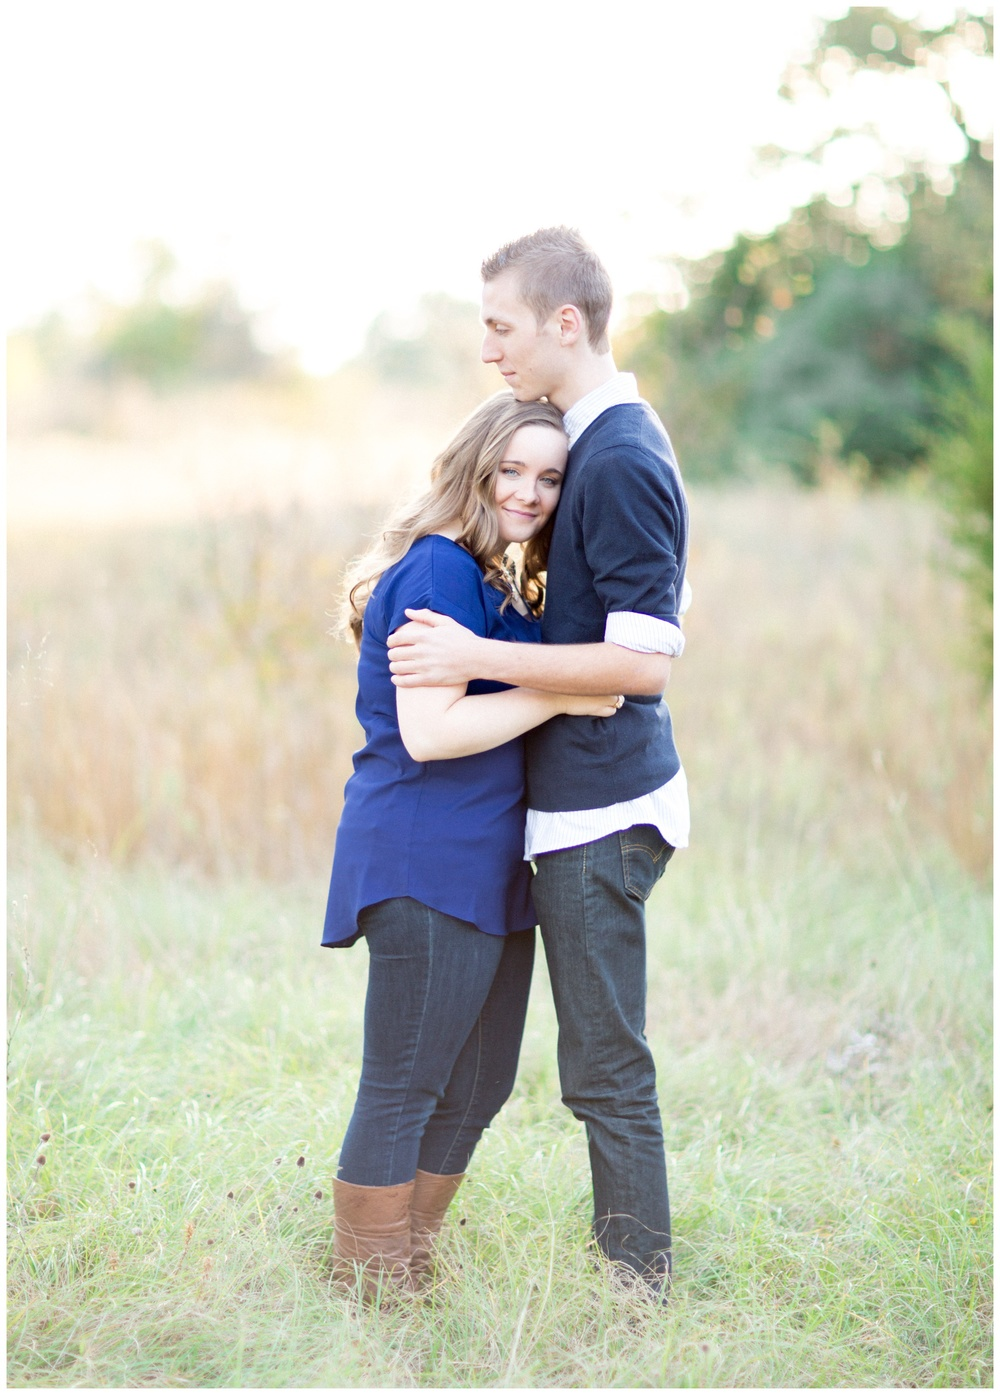 Sarah Best Photography - Claire & David - Engagement Photography-7_STP.jpg